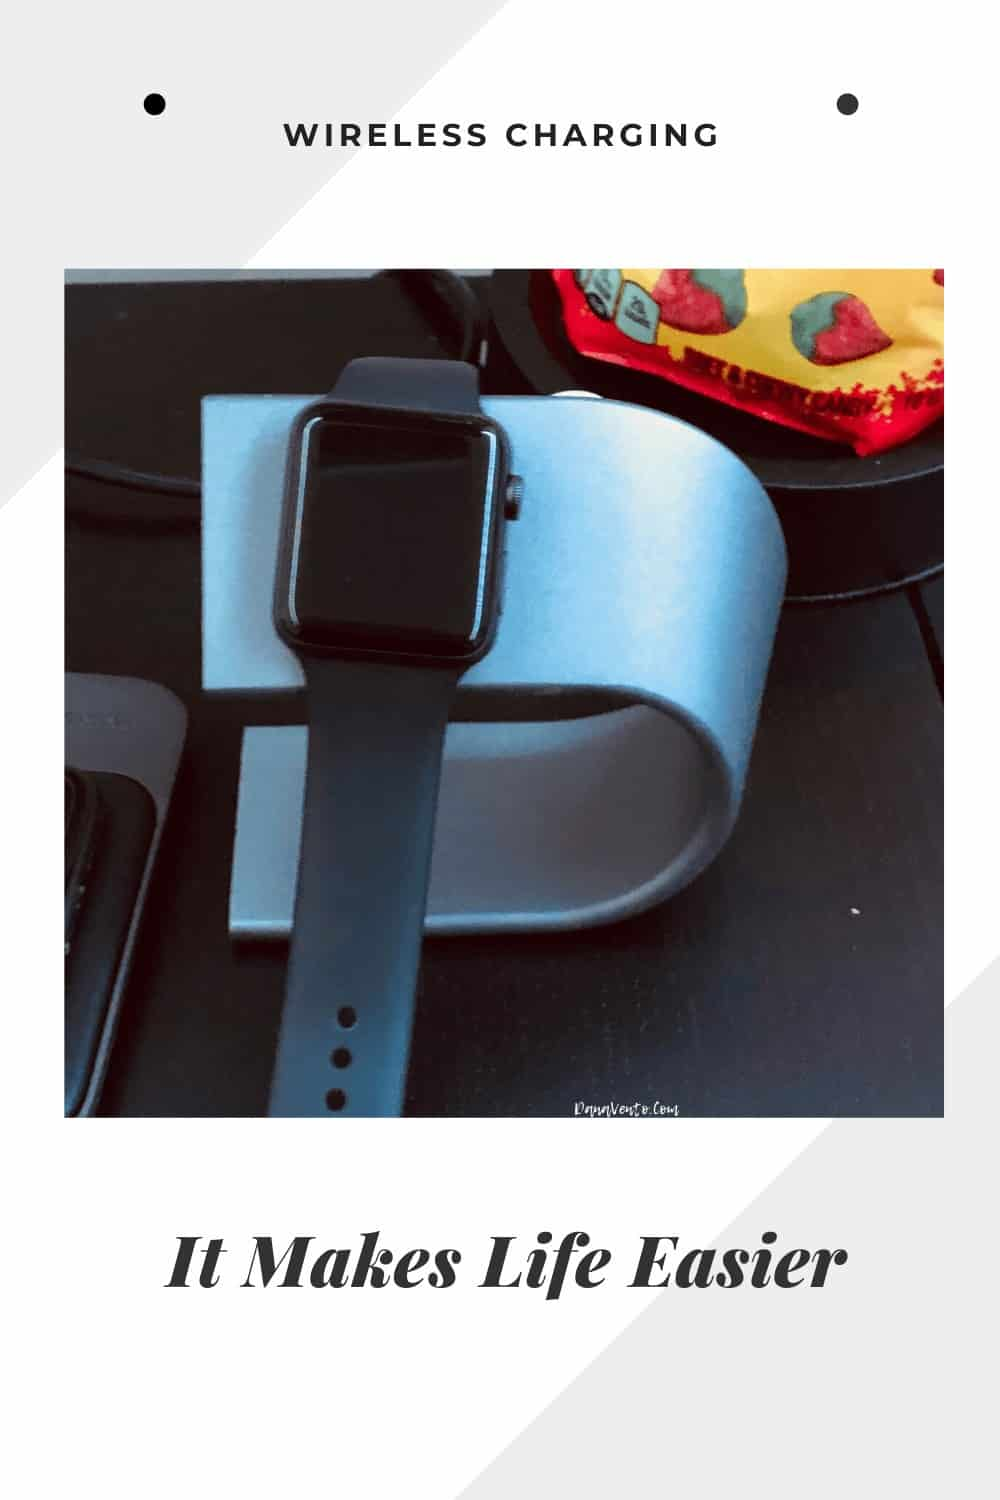 Watch by Apple being charged without a wire